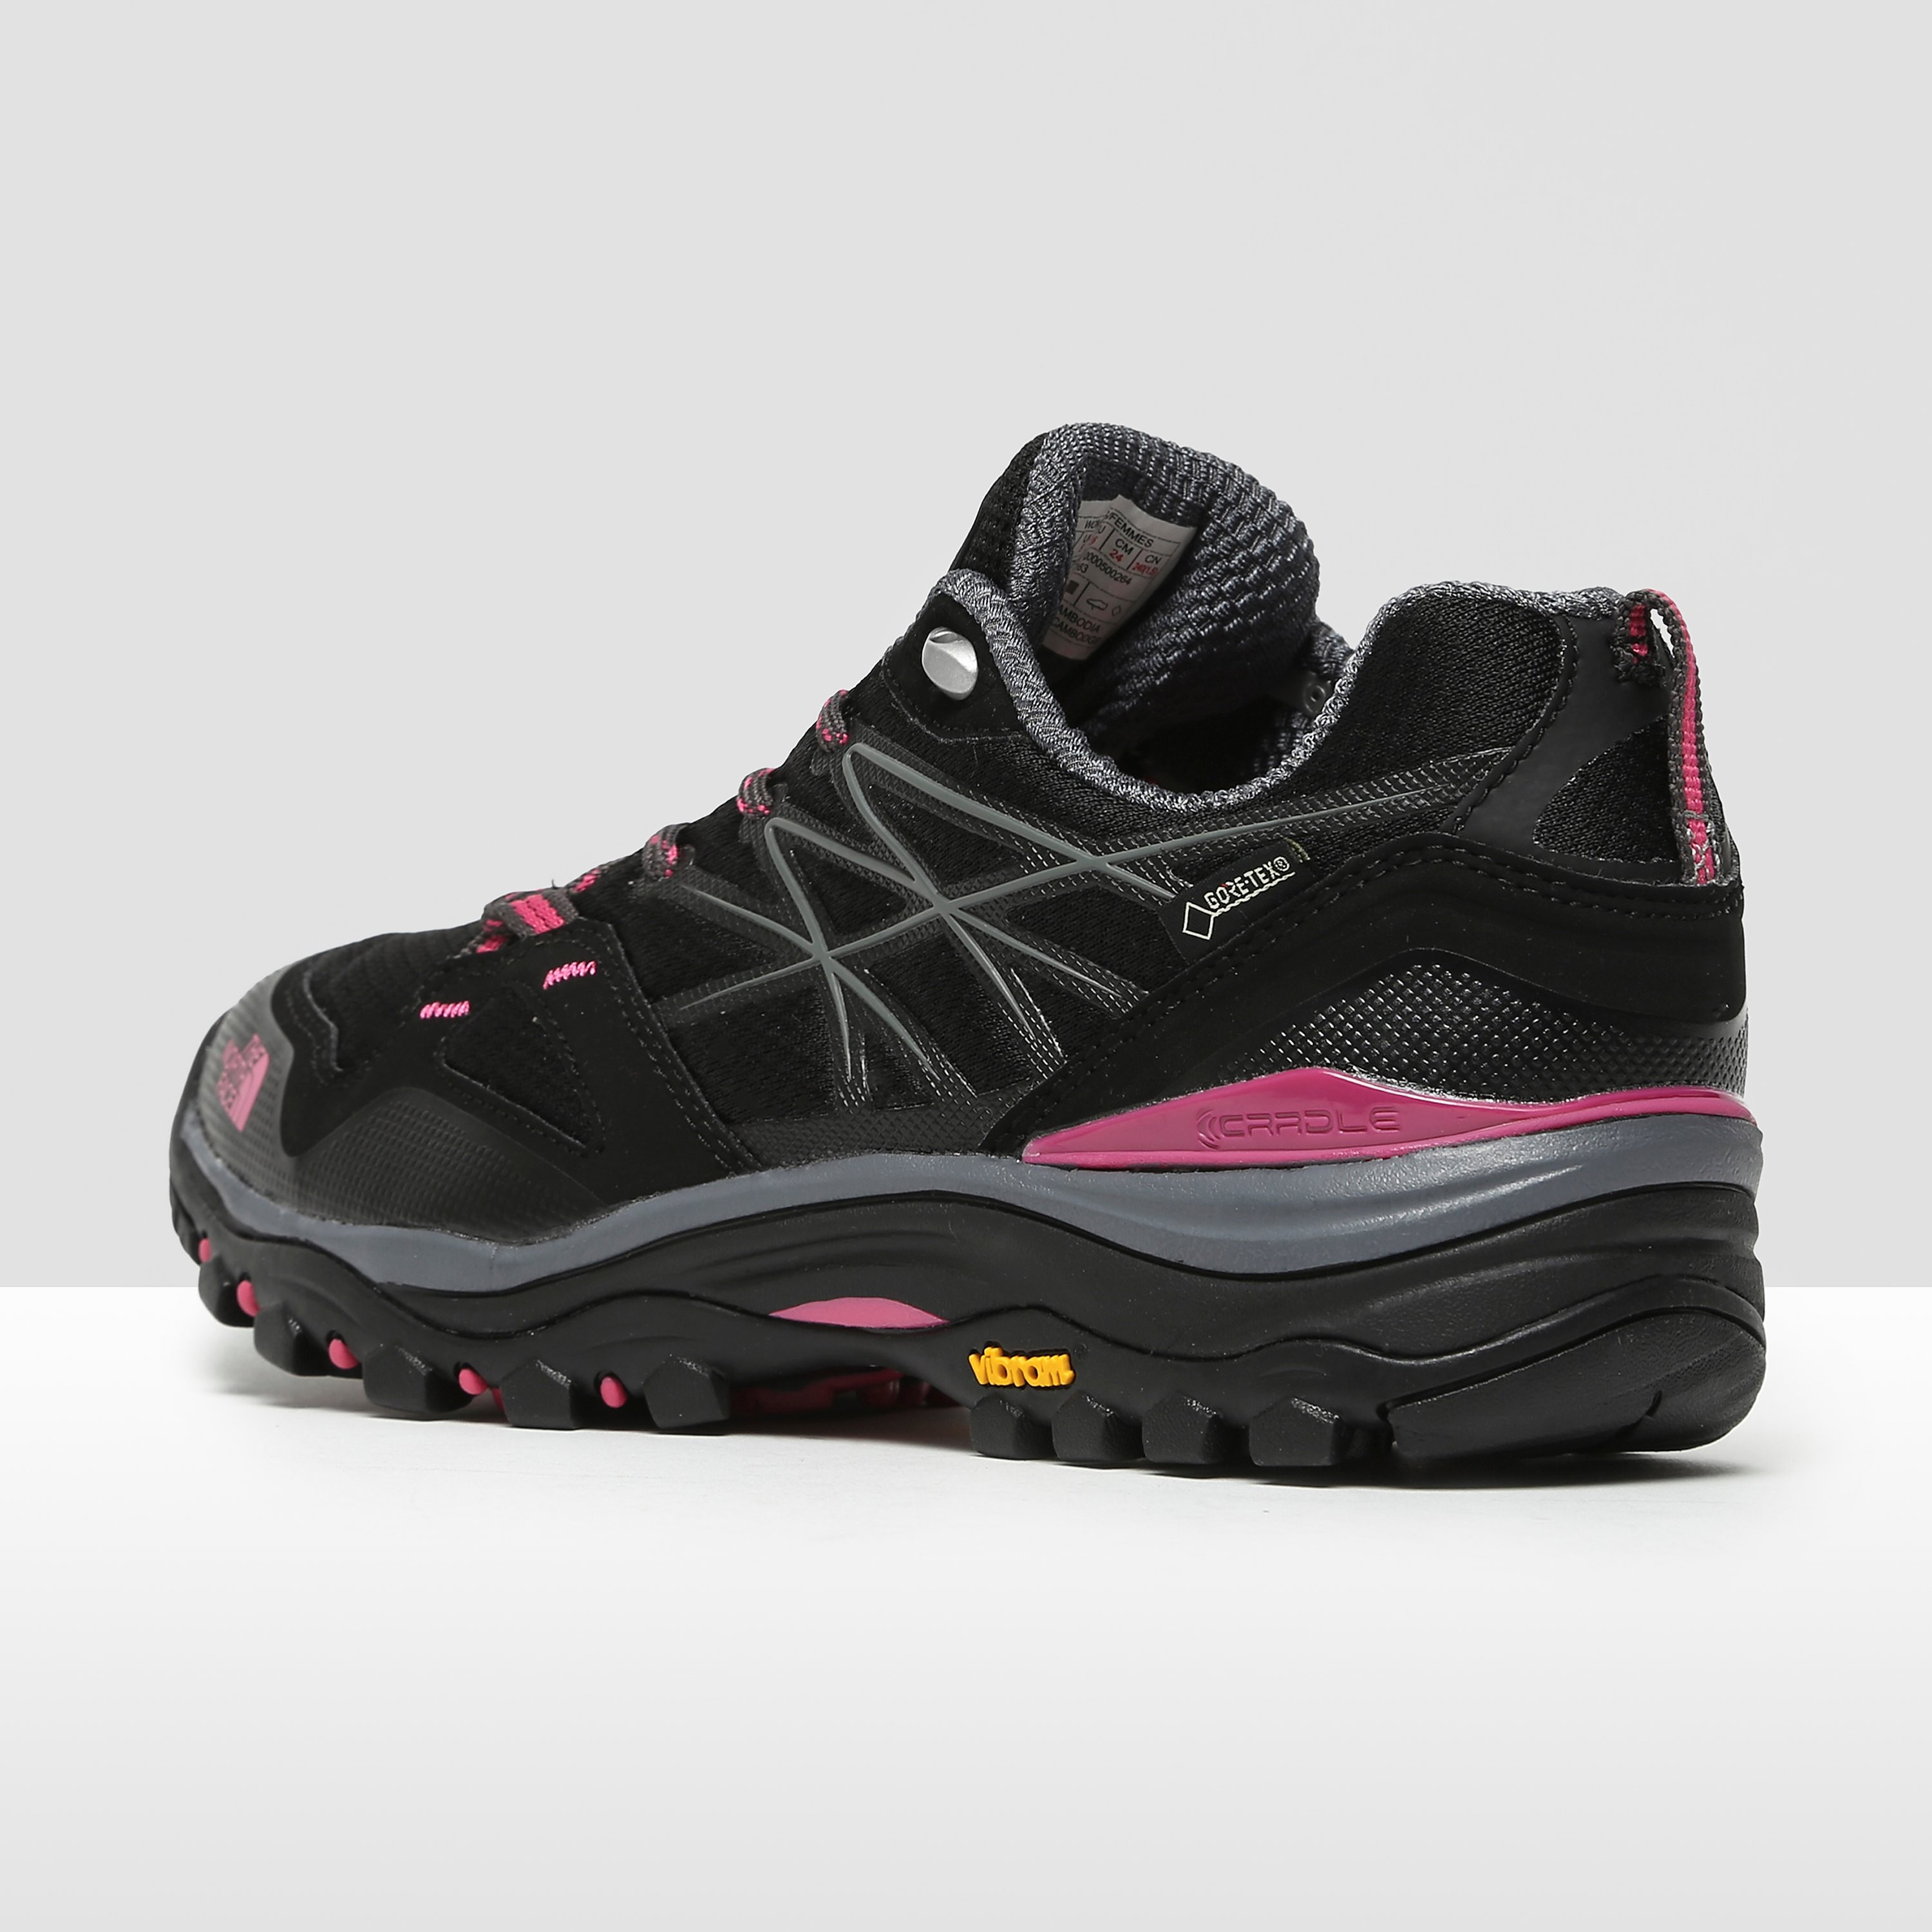 The North Face Hedgehog Fastpack GTX Ladies Hiking Shoe